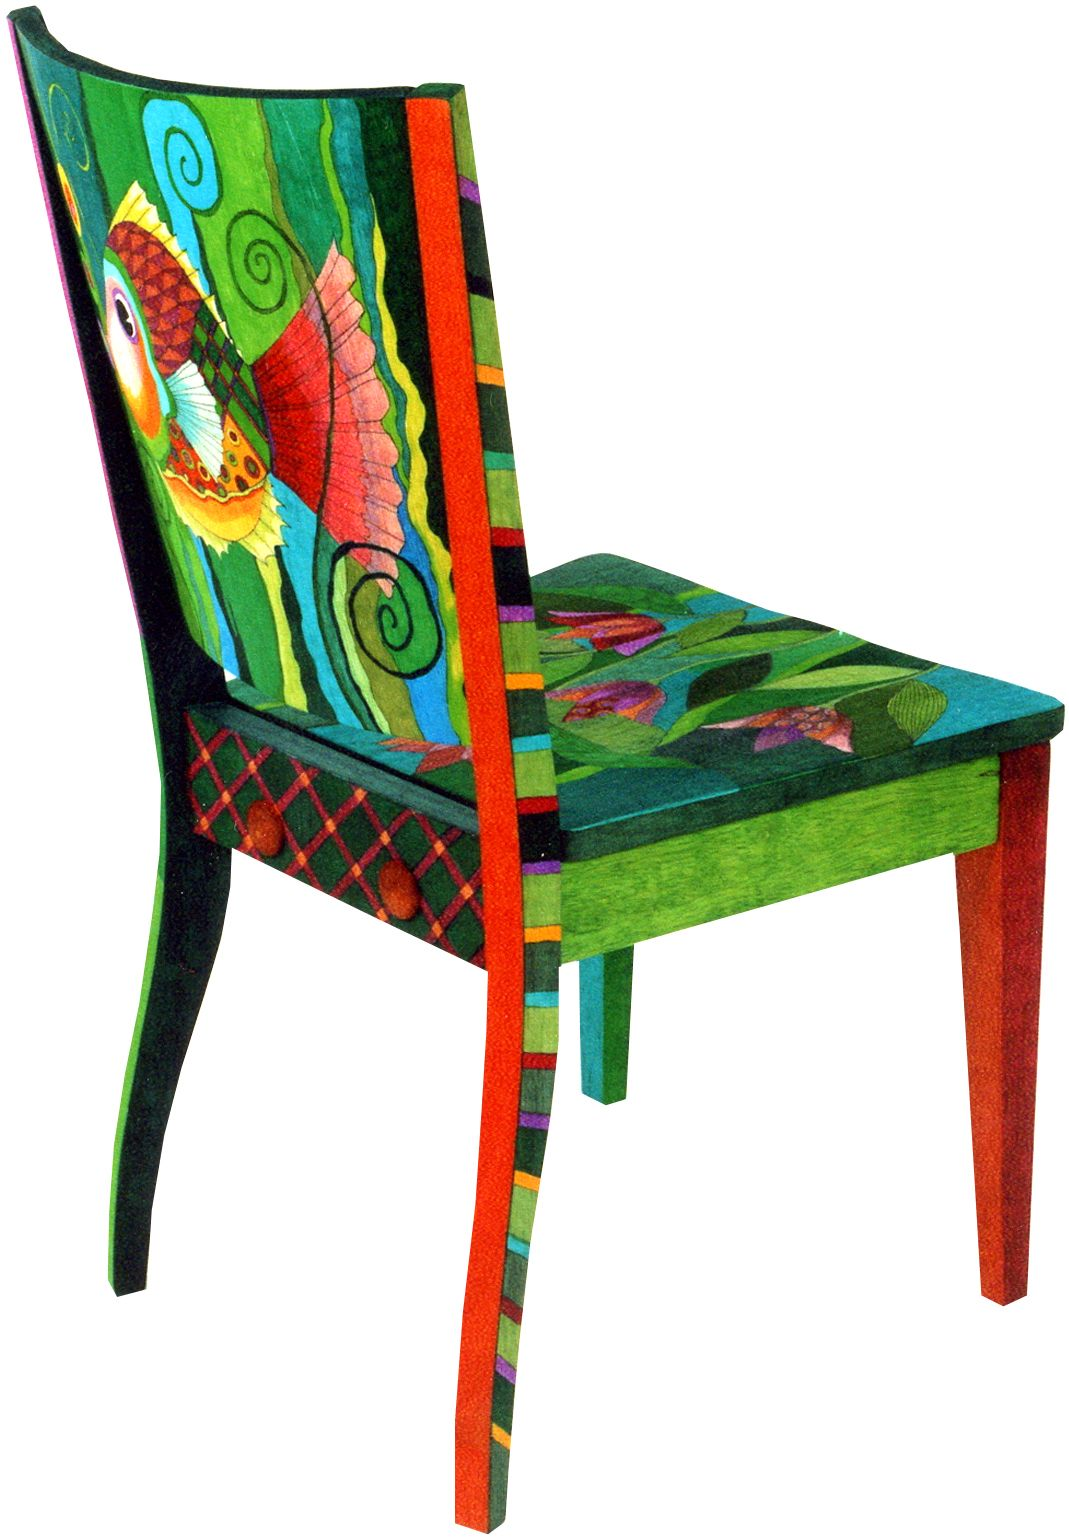 helen heins peterson decorated chair this is simply fabulous